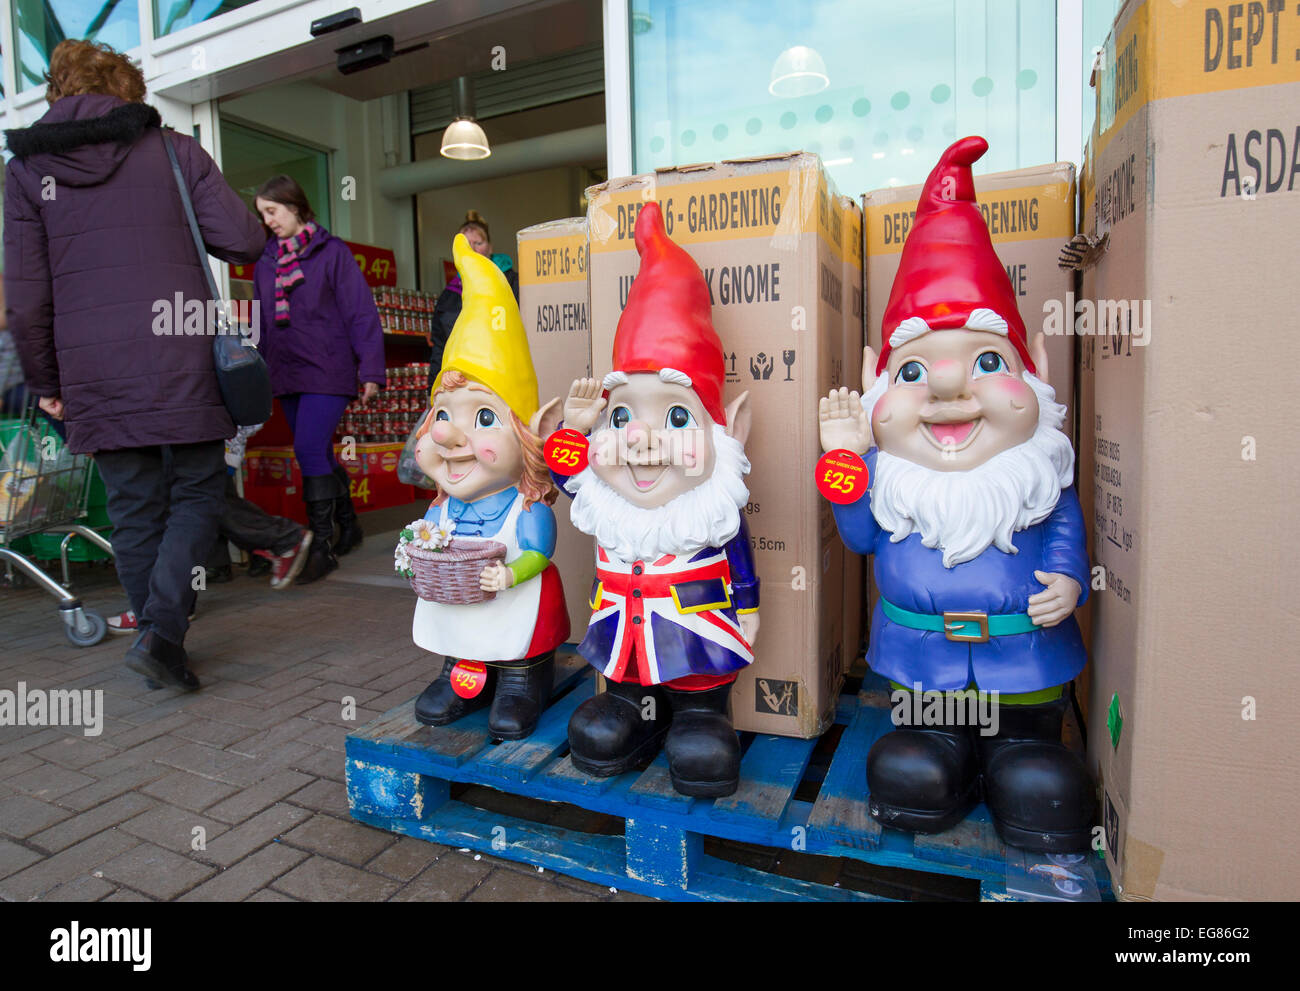 giant garden gnomes on sale at asada kendal - Garden Design Kendal